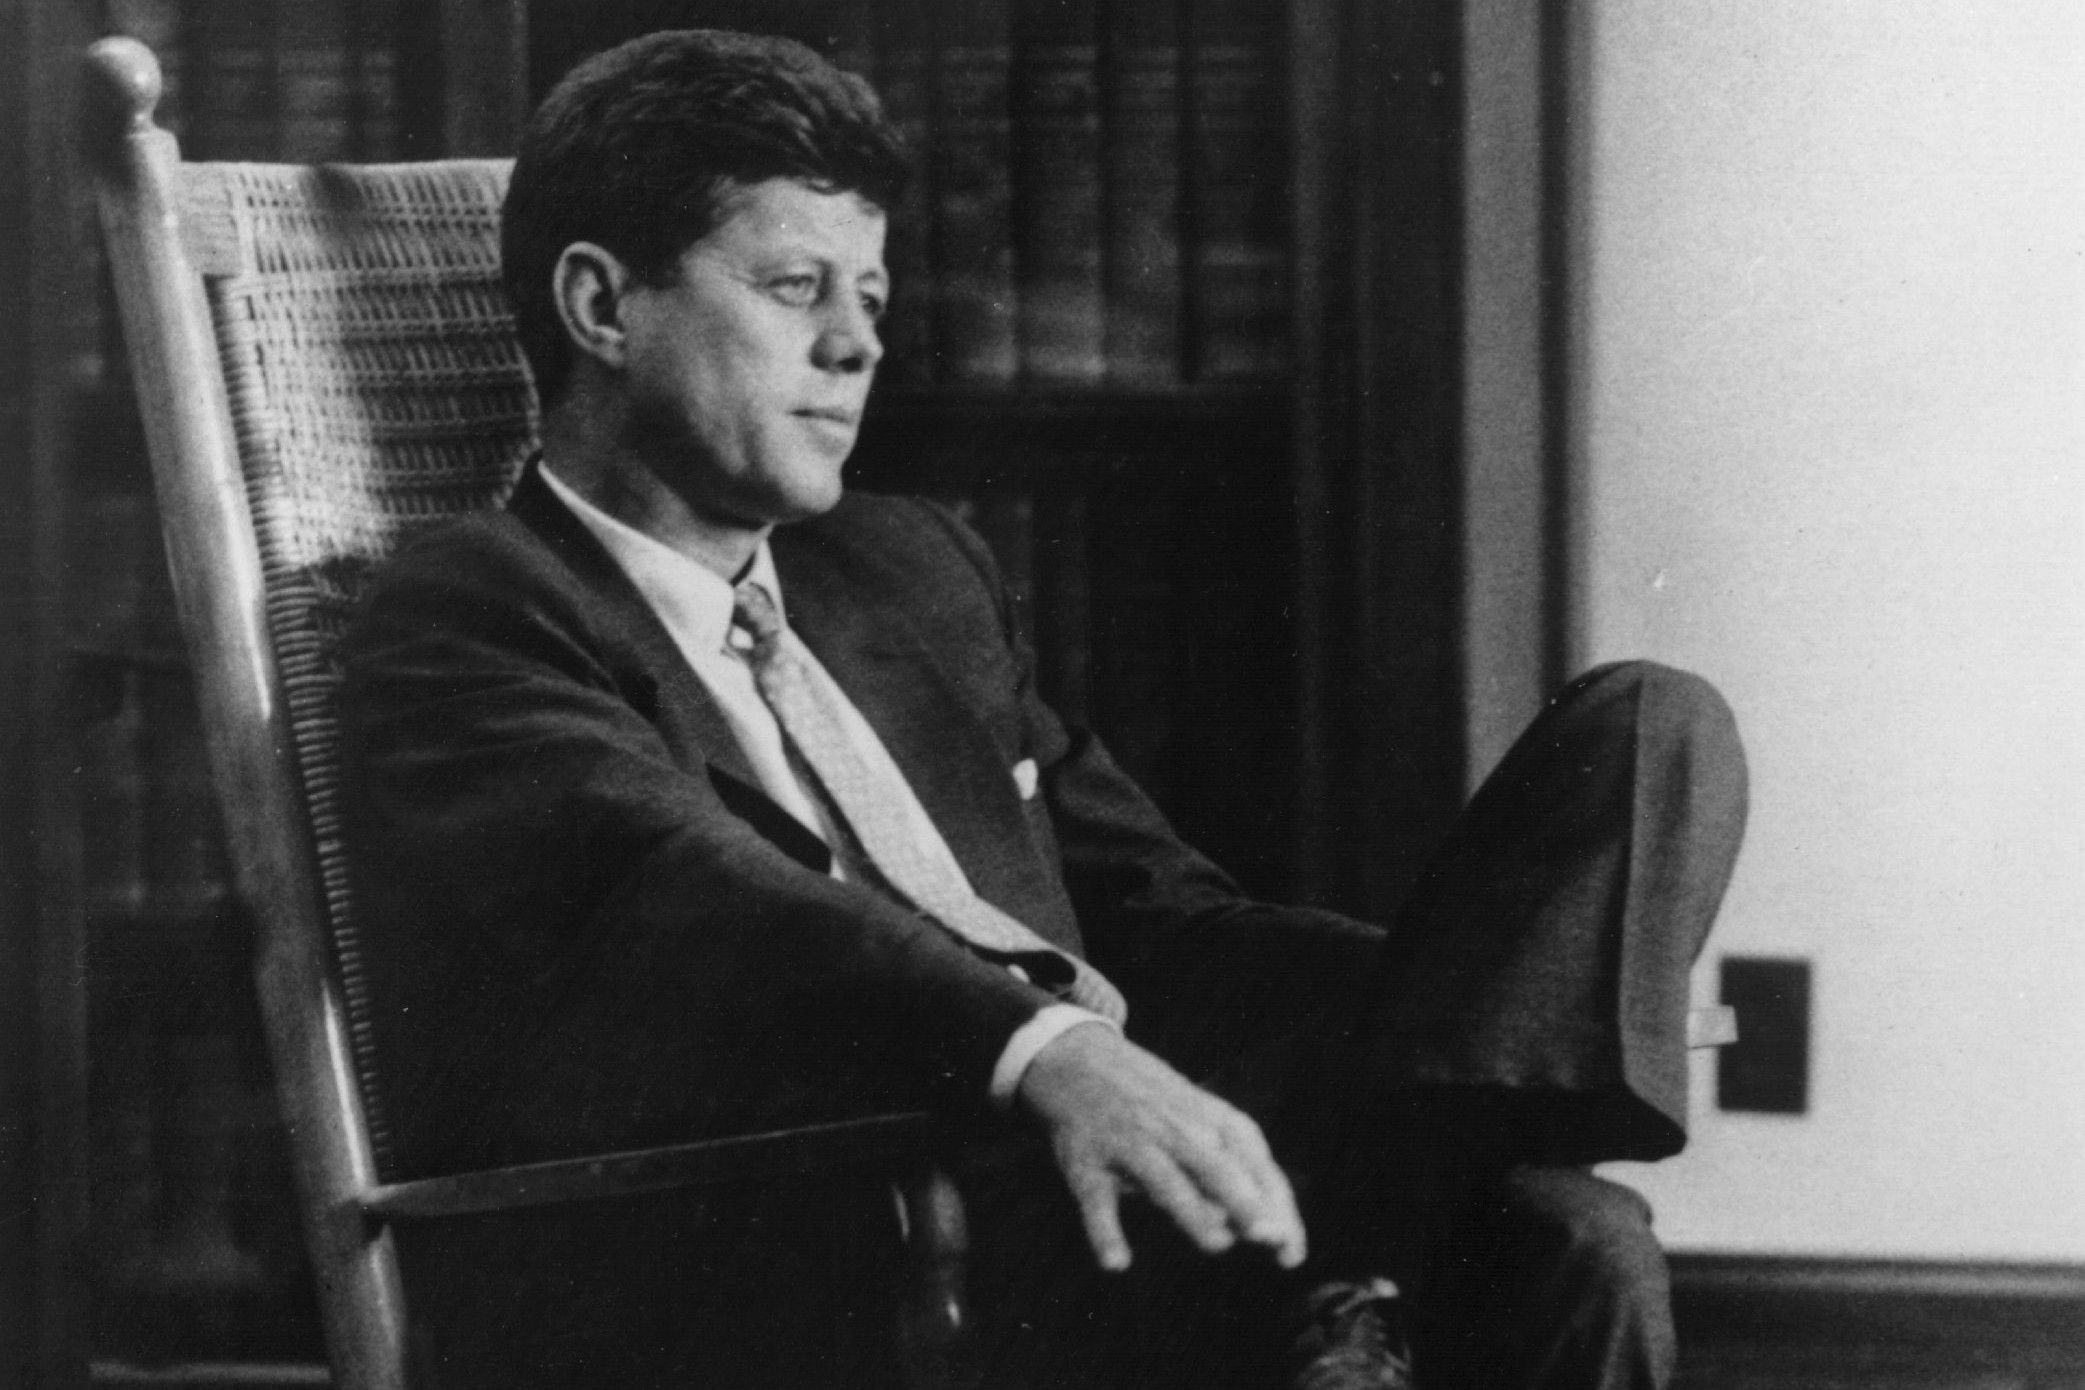 Remembering JFK - the assassination took place 56 years ago